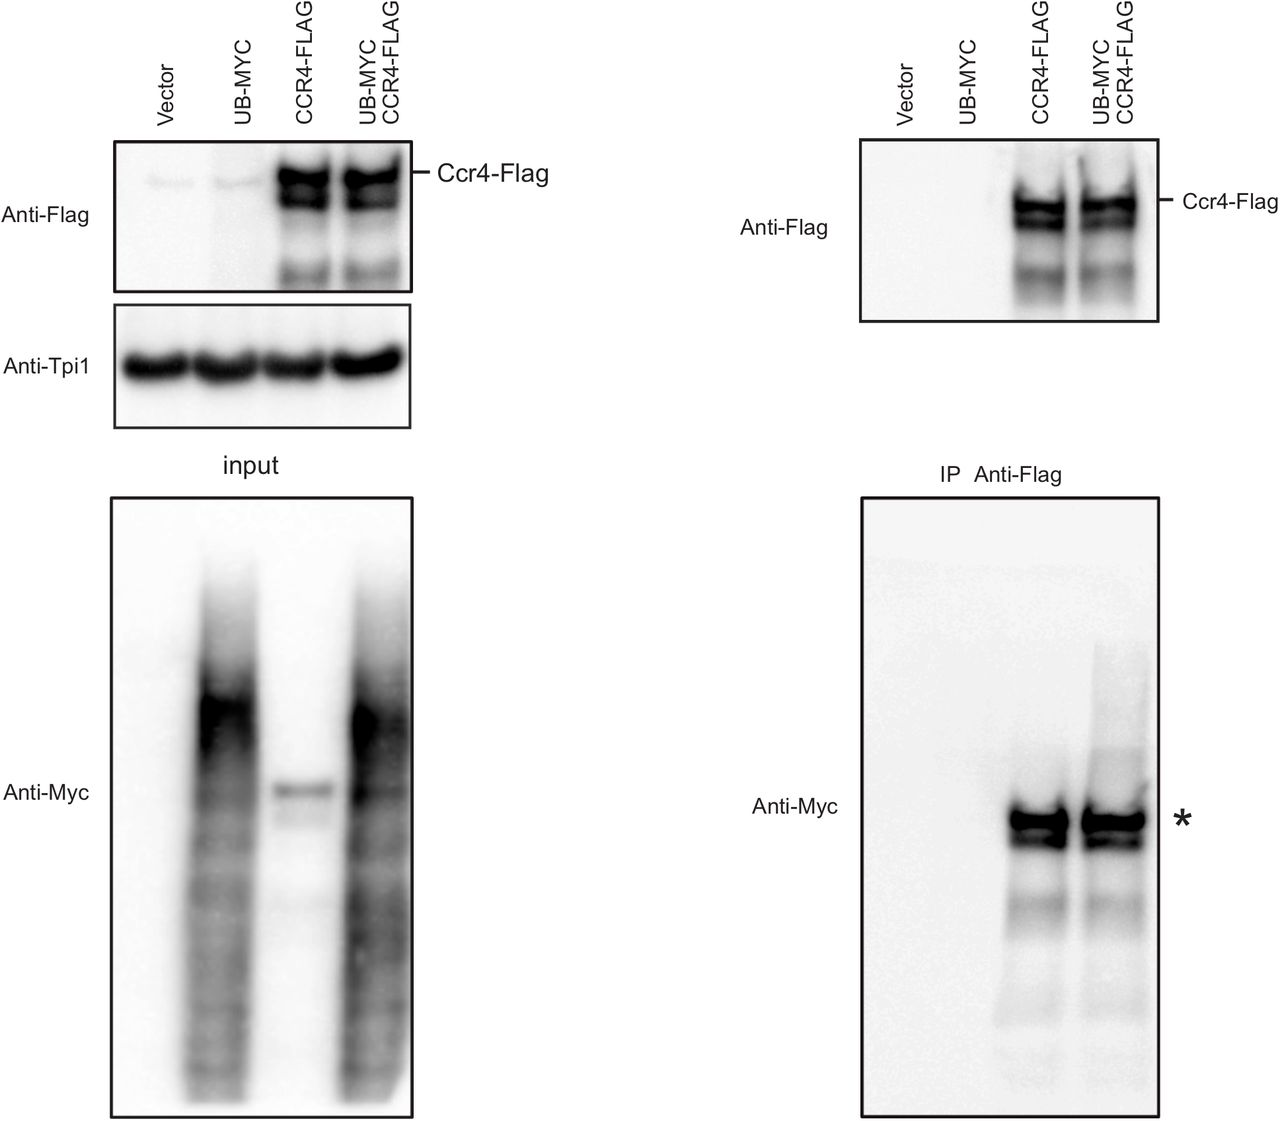 Ccr4 does not bind to cellular ubiquitin conjugates under denaturation conditions IP Experiments were done as in Figure 5B except the lysates were subjected to denaturation by addition of 2% SDS, 1% β-mercaptoethanol and heating at 95°C for 5 min. Ccr4-3XFLAG protein was immunoprecipitated as described in methods section. Input levels (left panel) and IP eluate (right panel) were analyzed by western blots using anti-Myc and anti-Flag antibodies. Tpi1 was used as loading control.